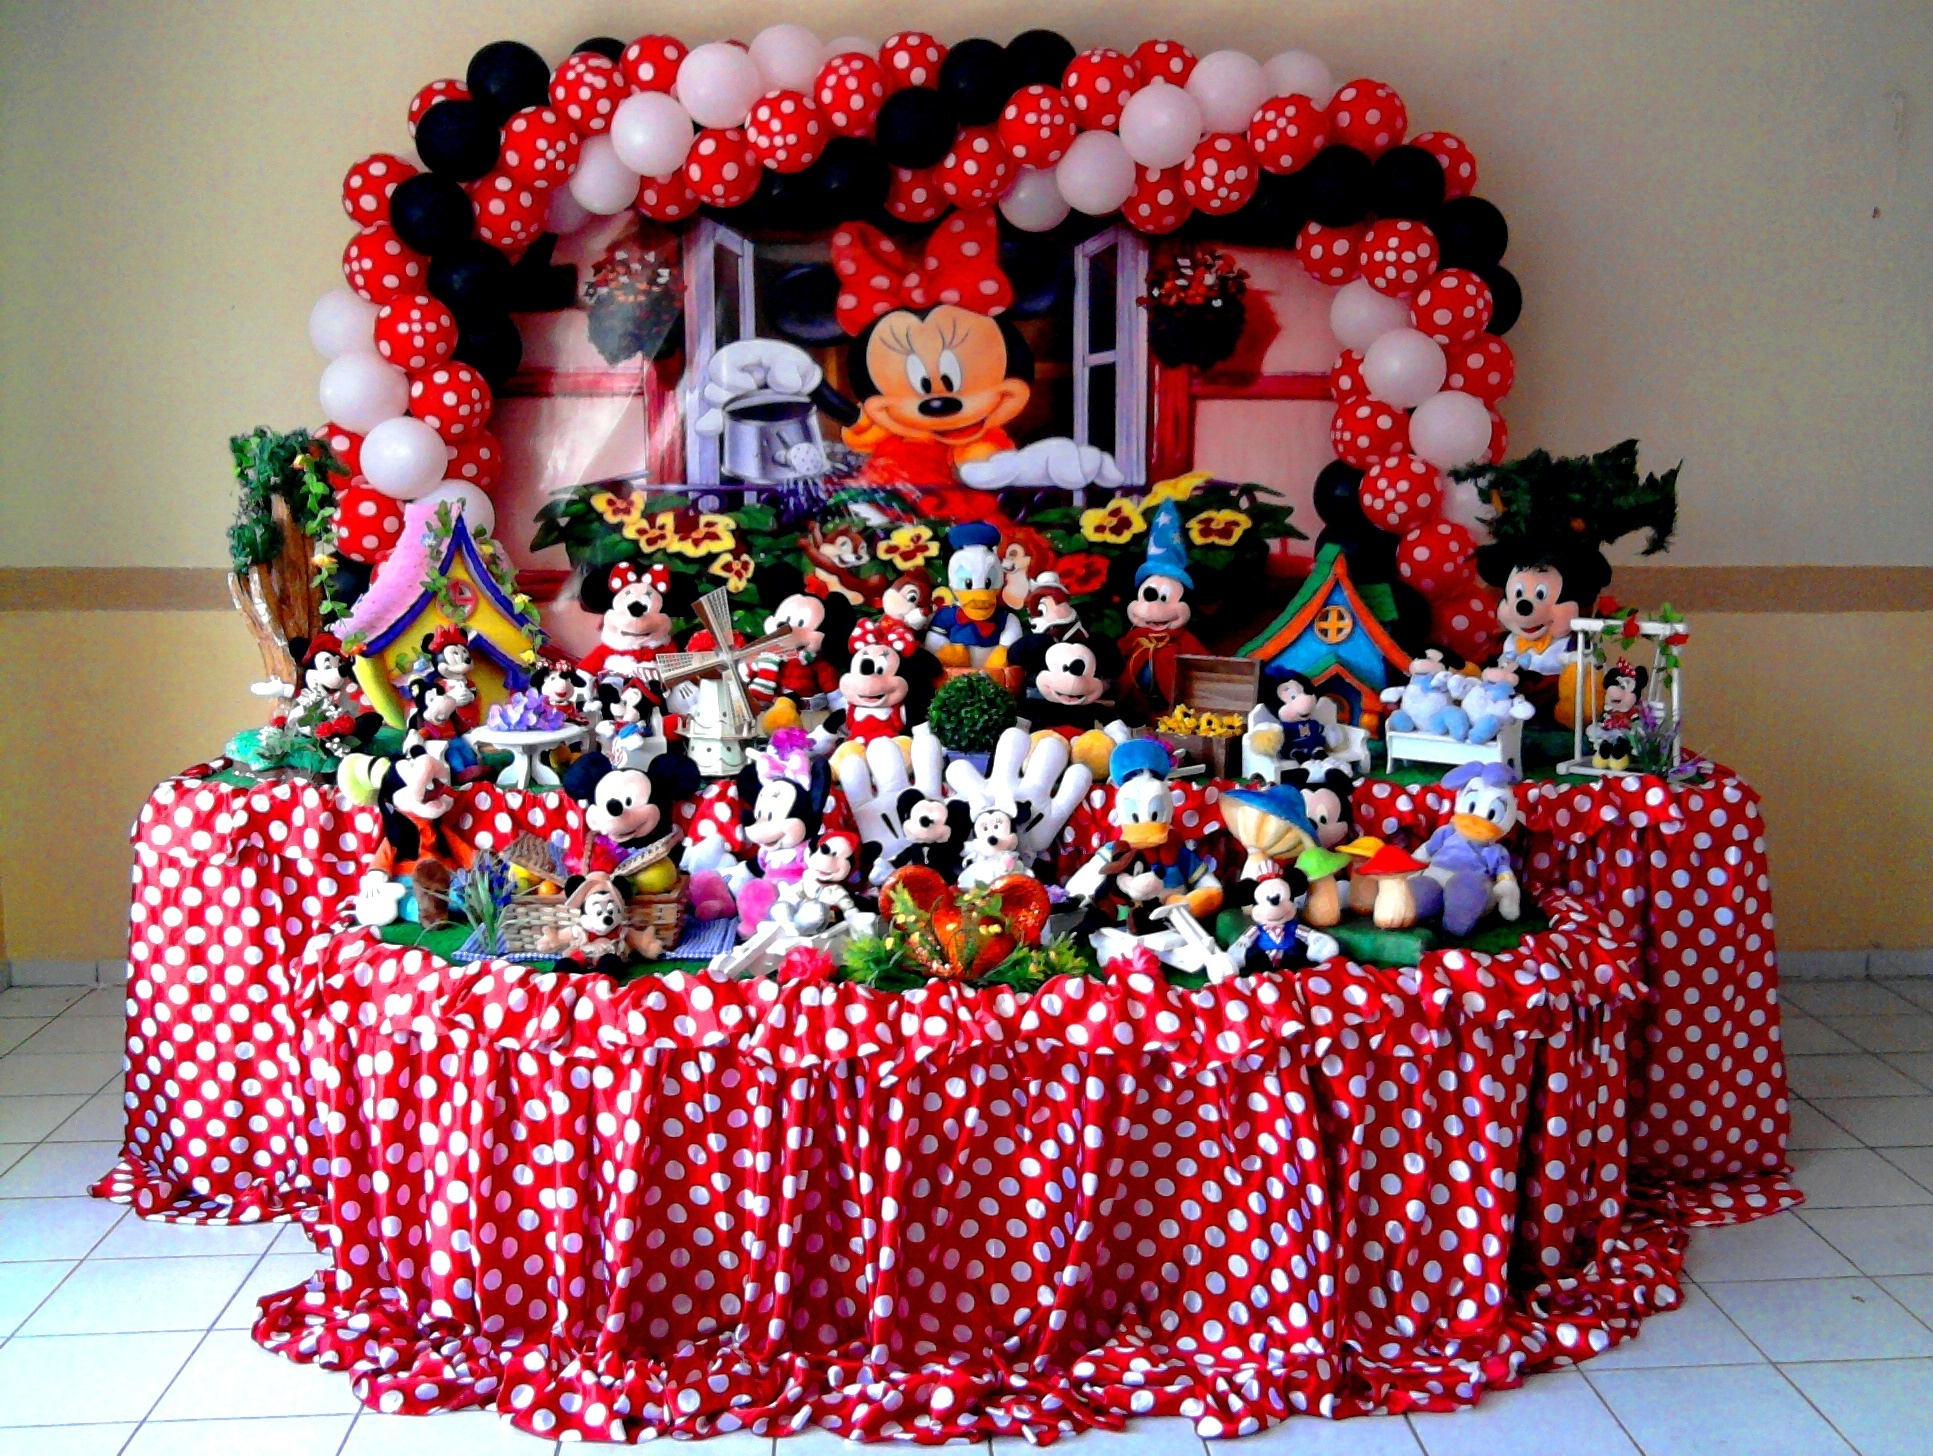 decoracao minnie 3 metros decoracao minnie 3 metros decoracao minnie 3